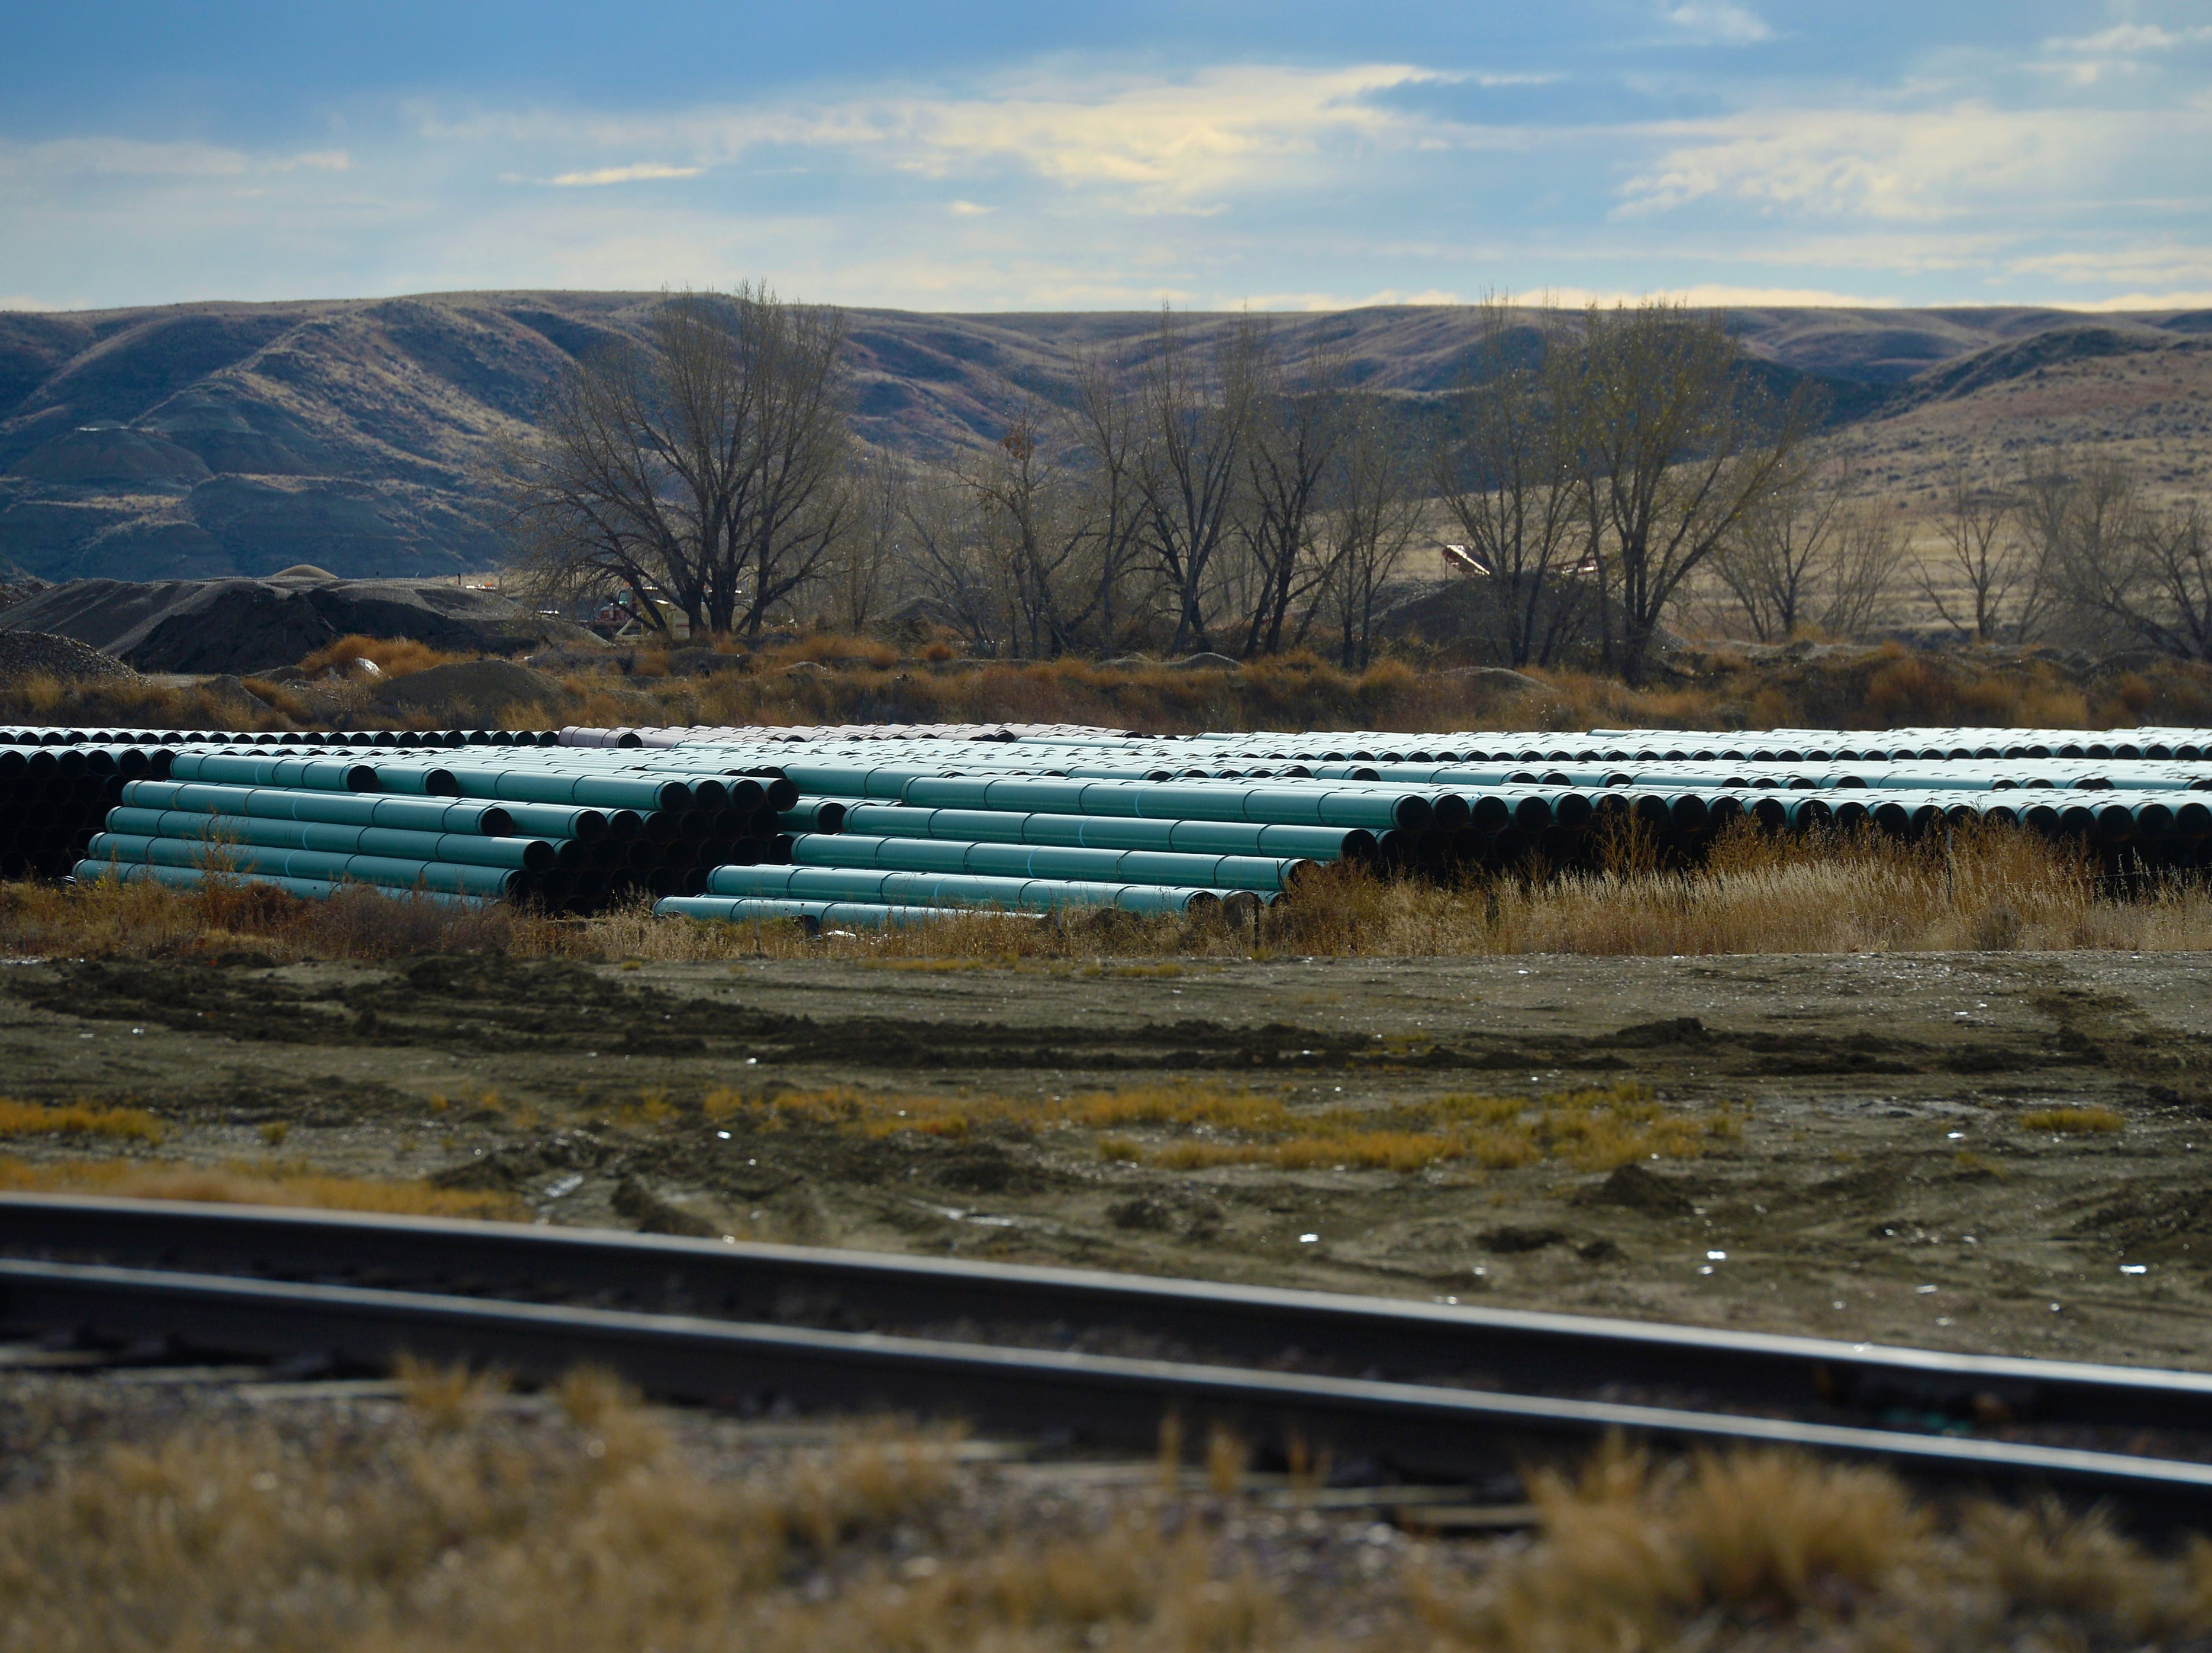 Pipe for the Keystone XL Pipeline is being transported to Montana by rail. It is offloaded outside of Glendive, Mont., and trucked to pipe yards along the construction route.